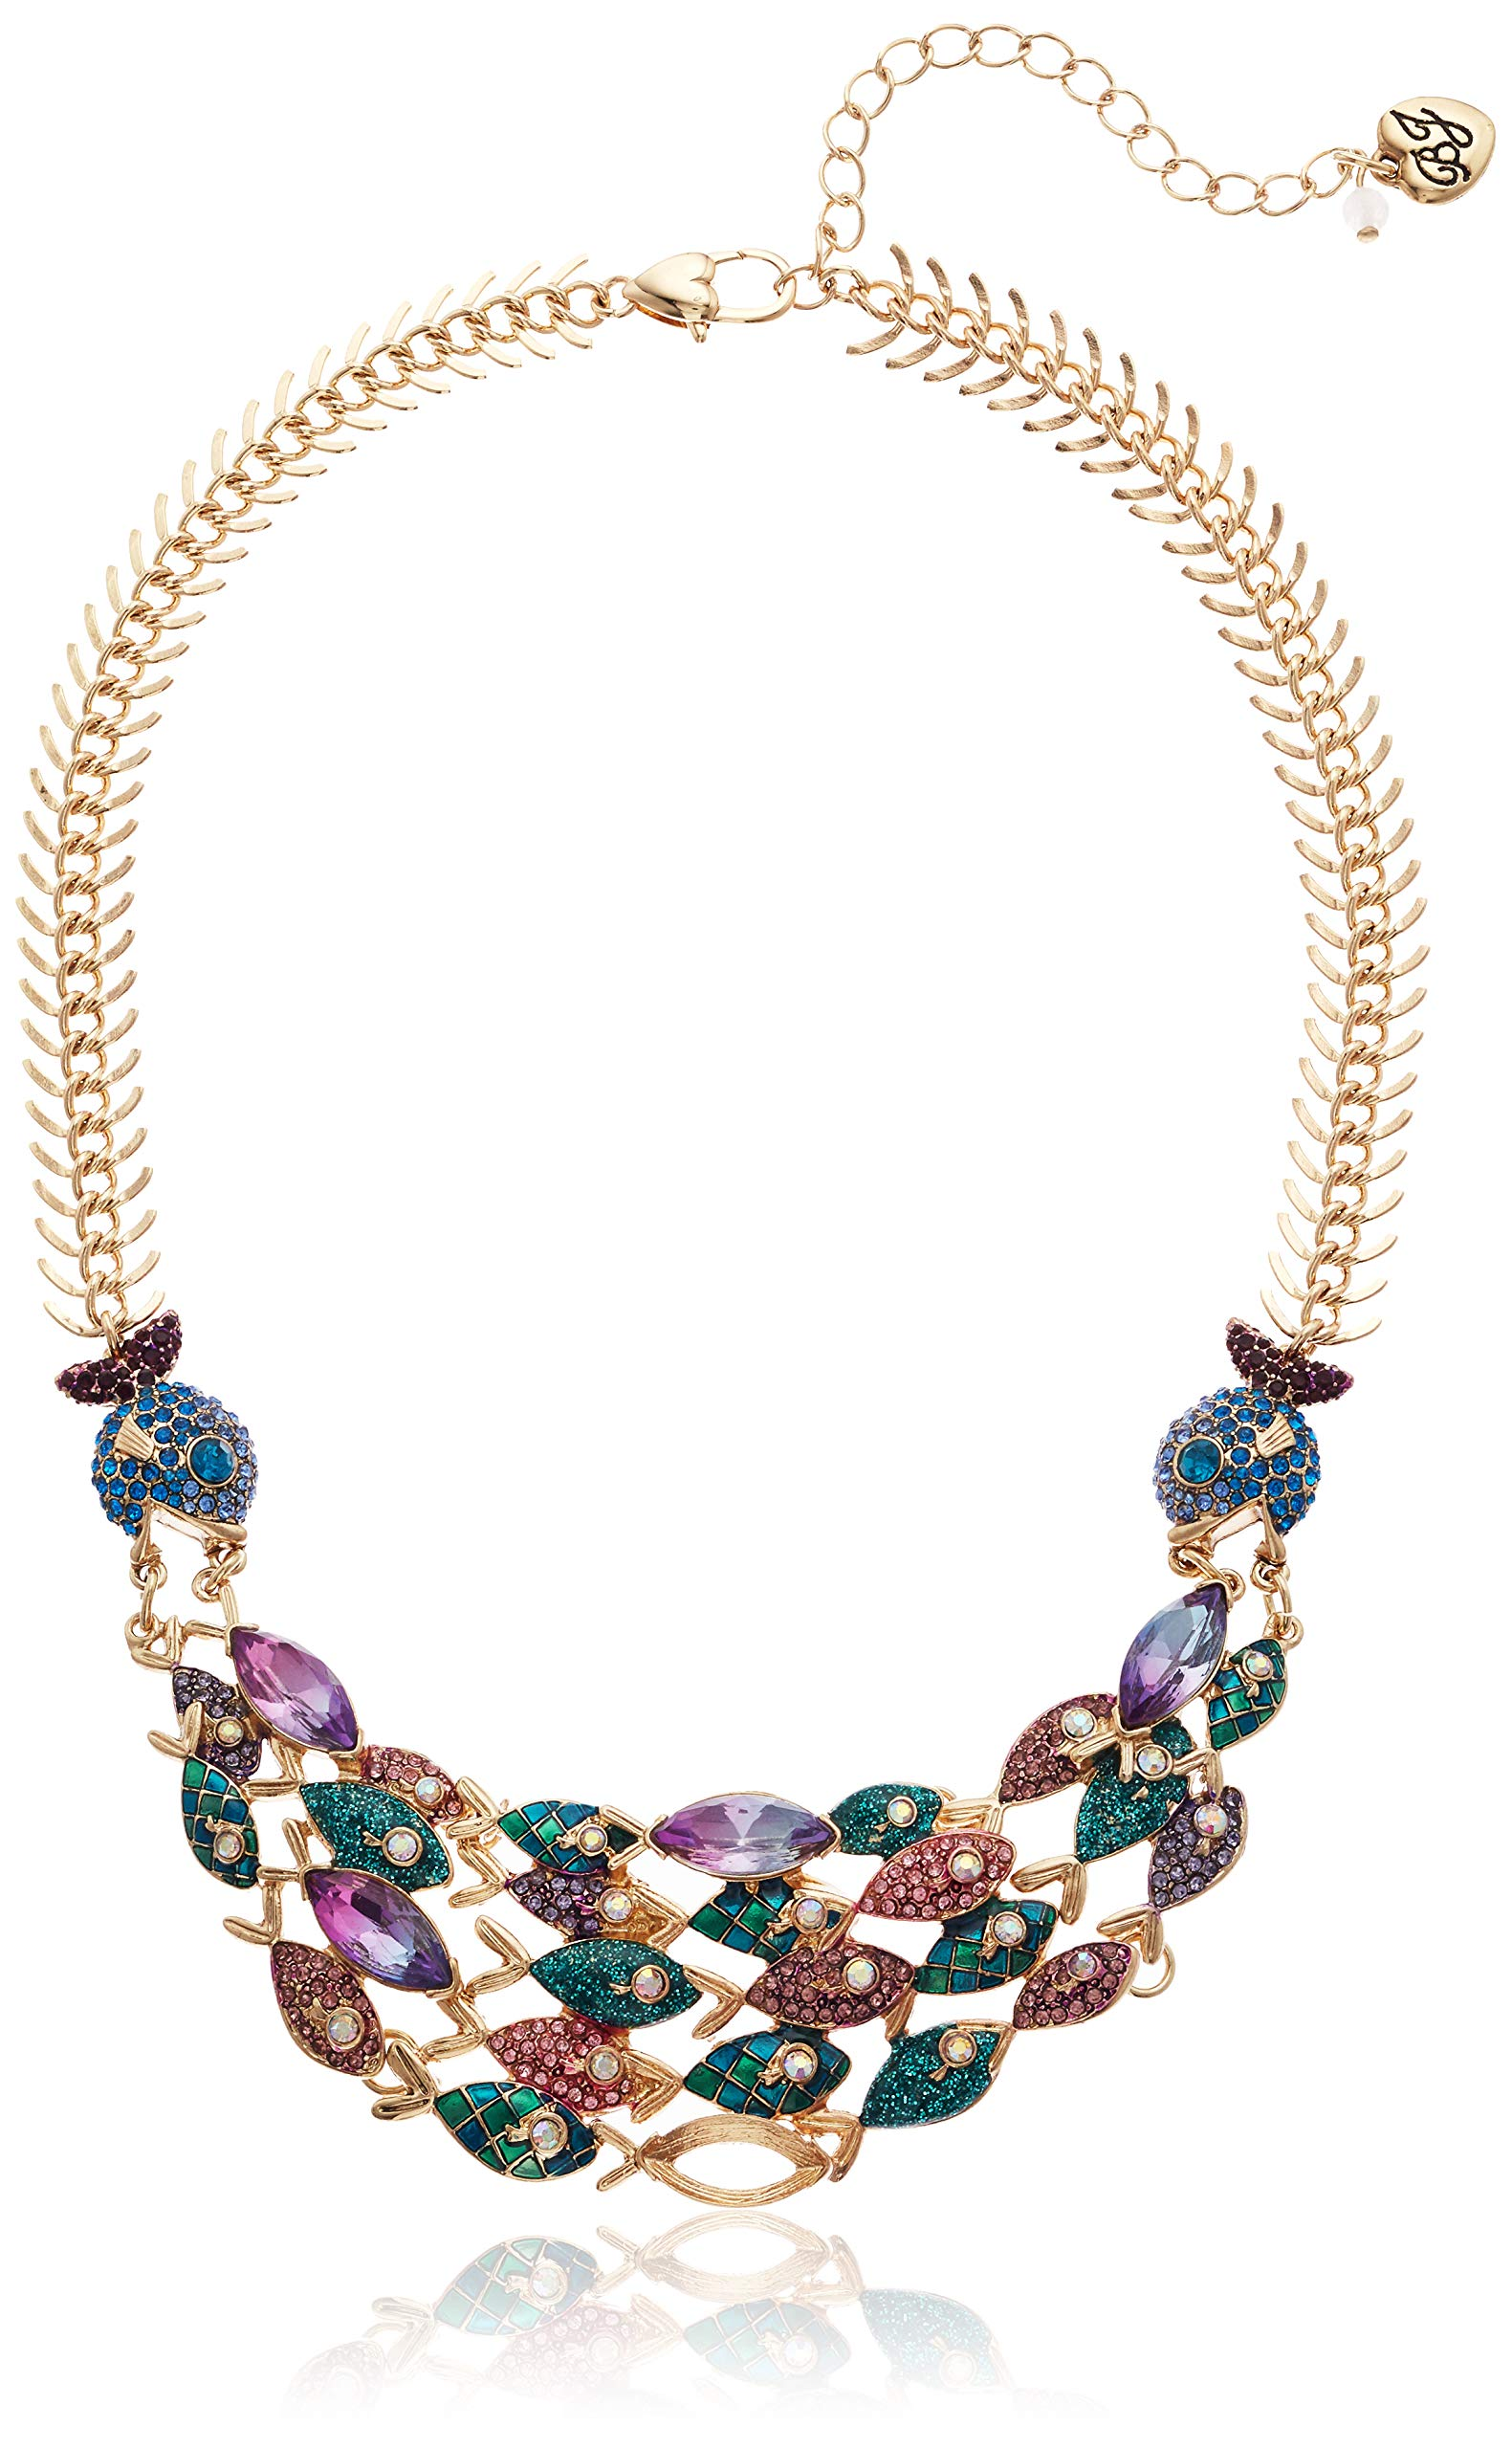 Betsey Johnson (GBG) Women's Mixed Fish Frontal Necklace, Multi, One Size by Betsey Johnson (GBG)